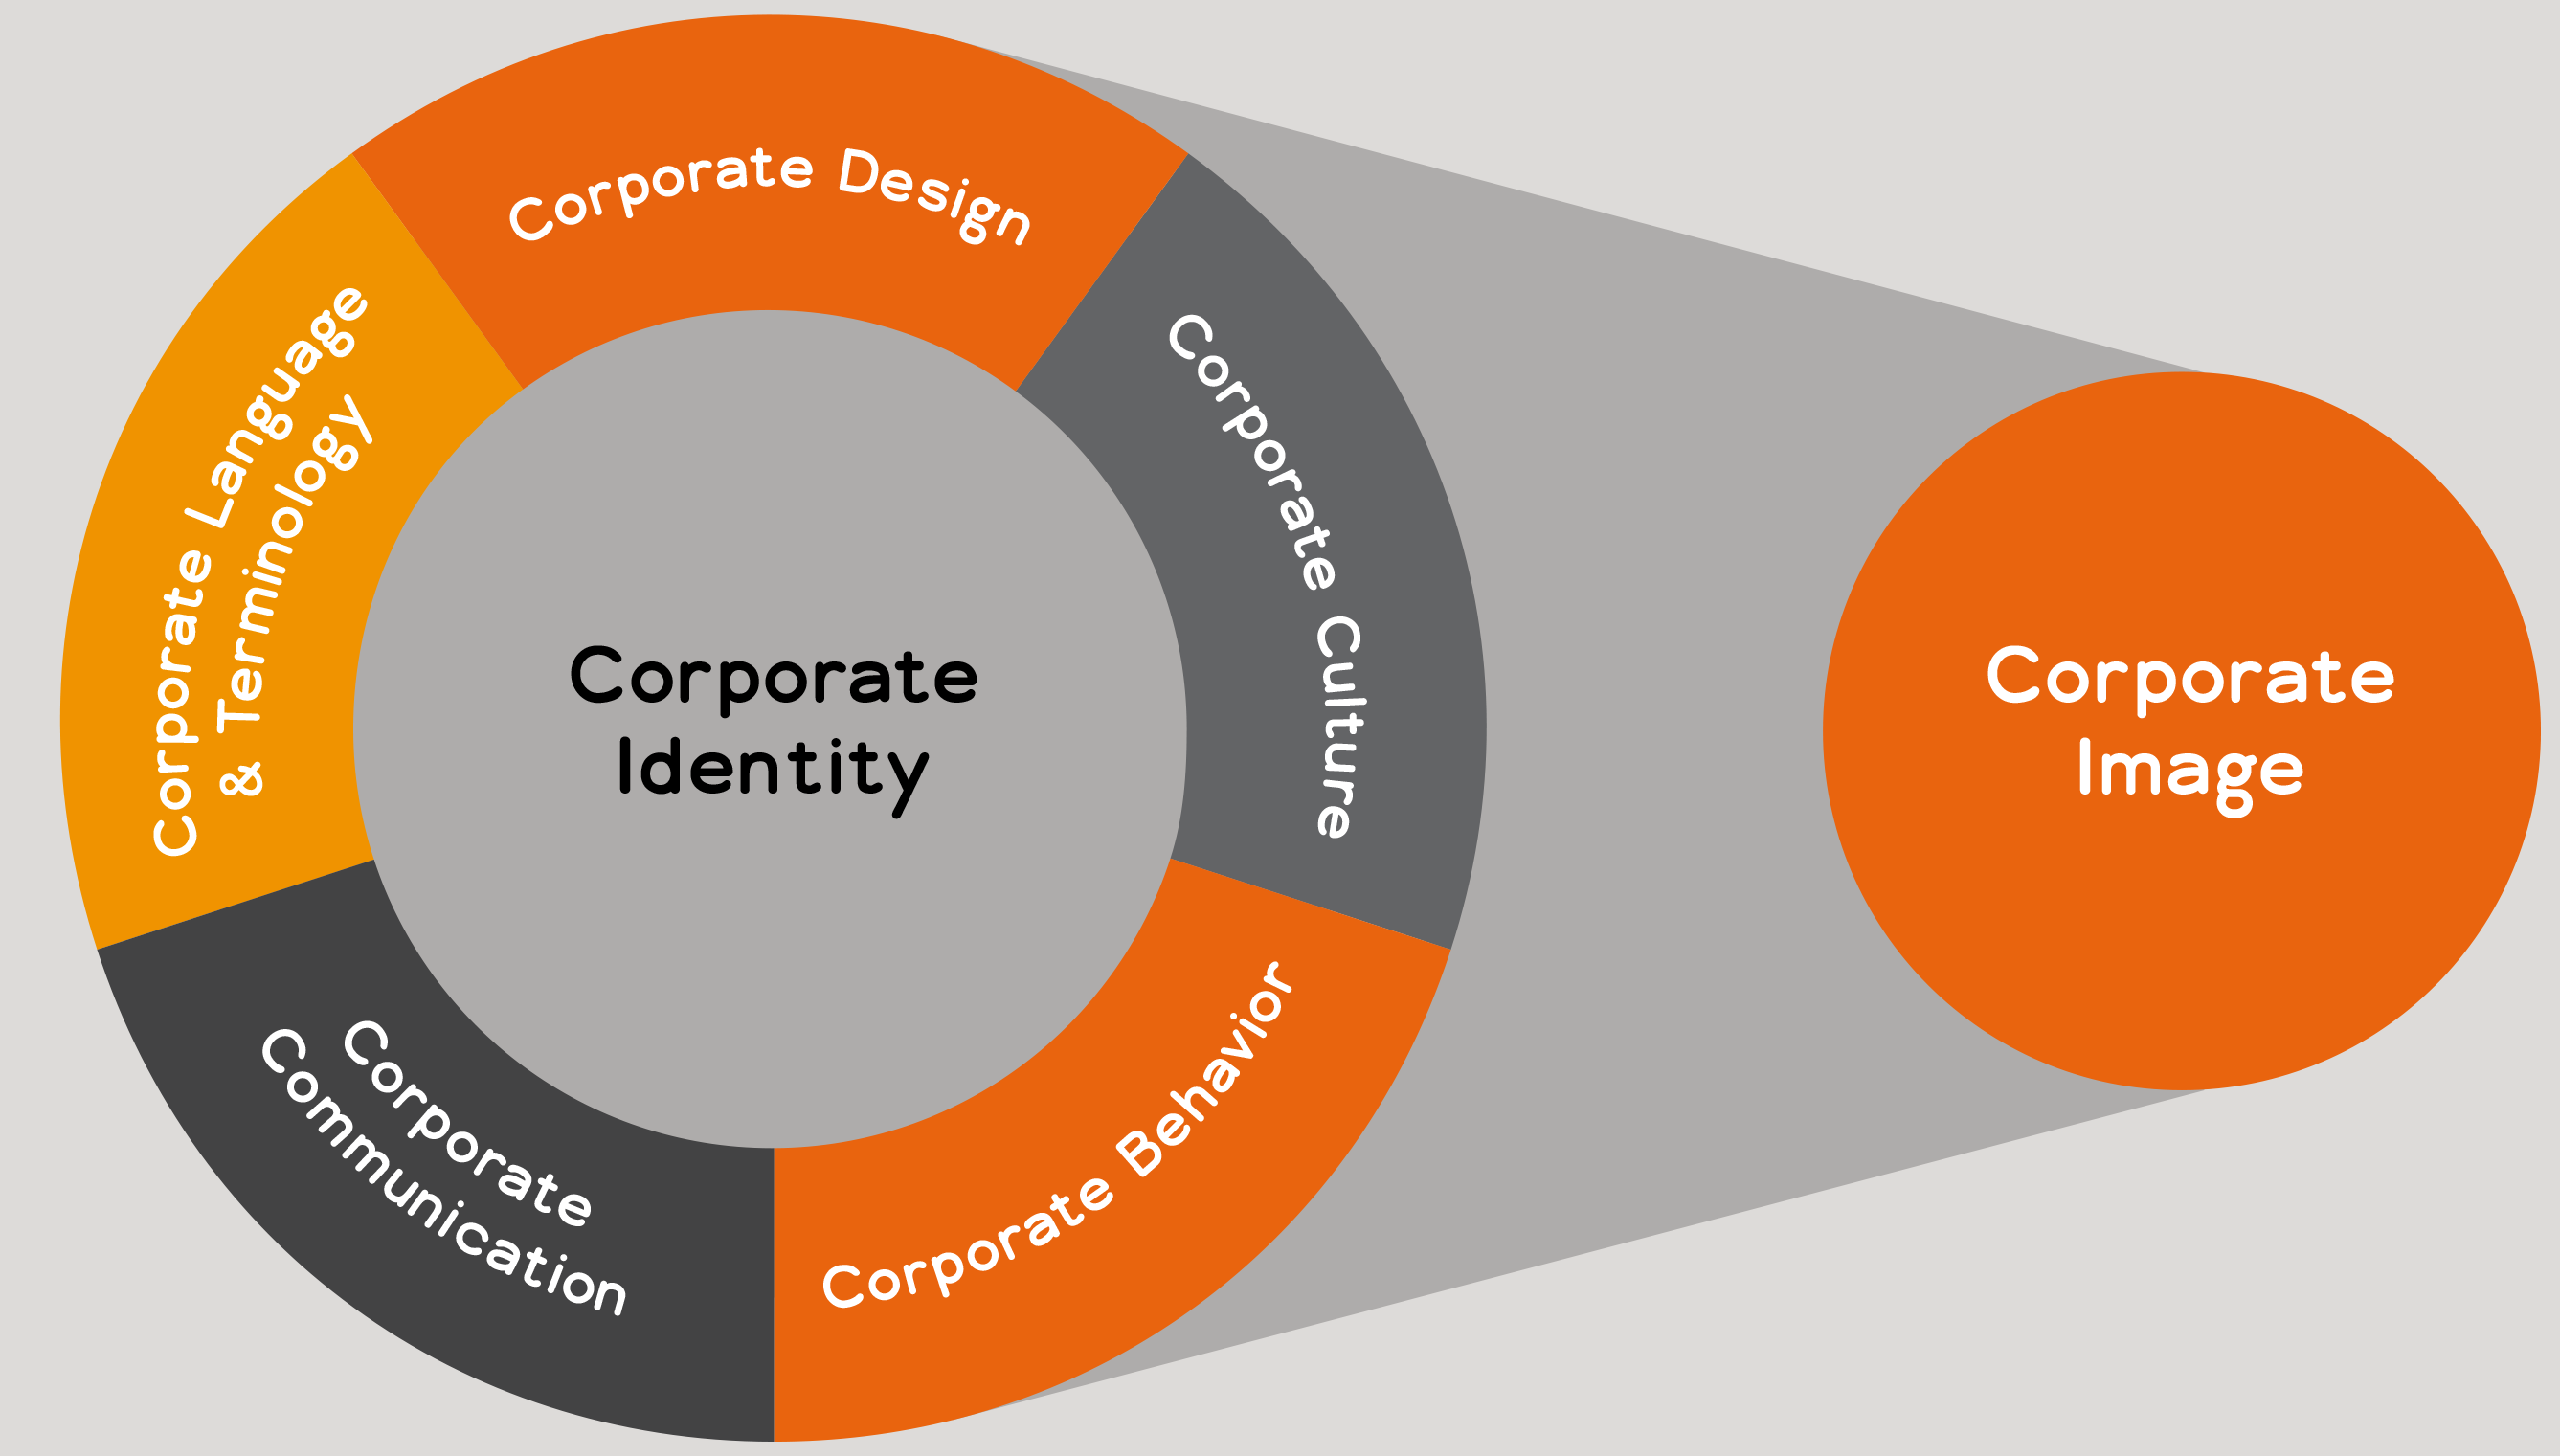 Corporate language part of corporate identity